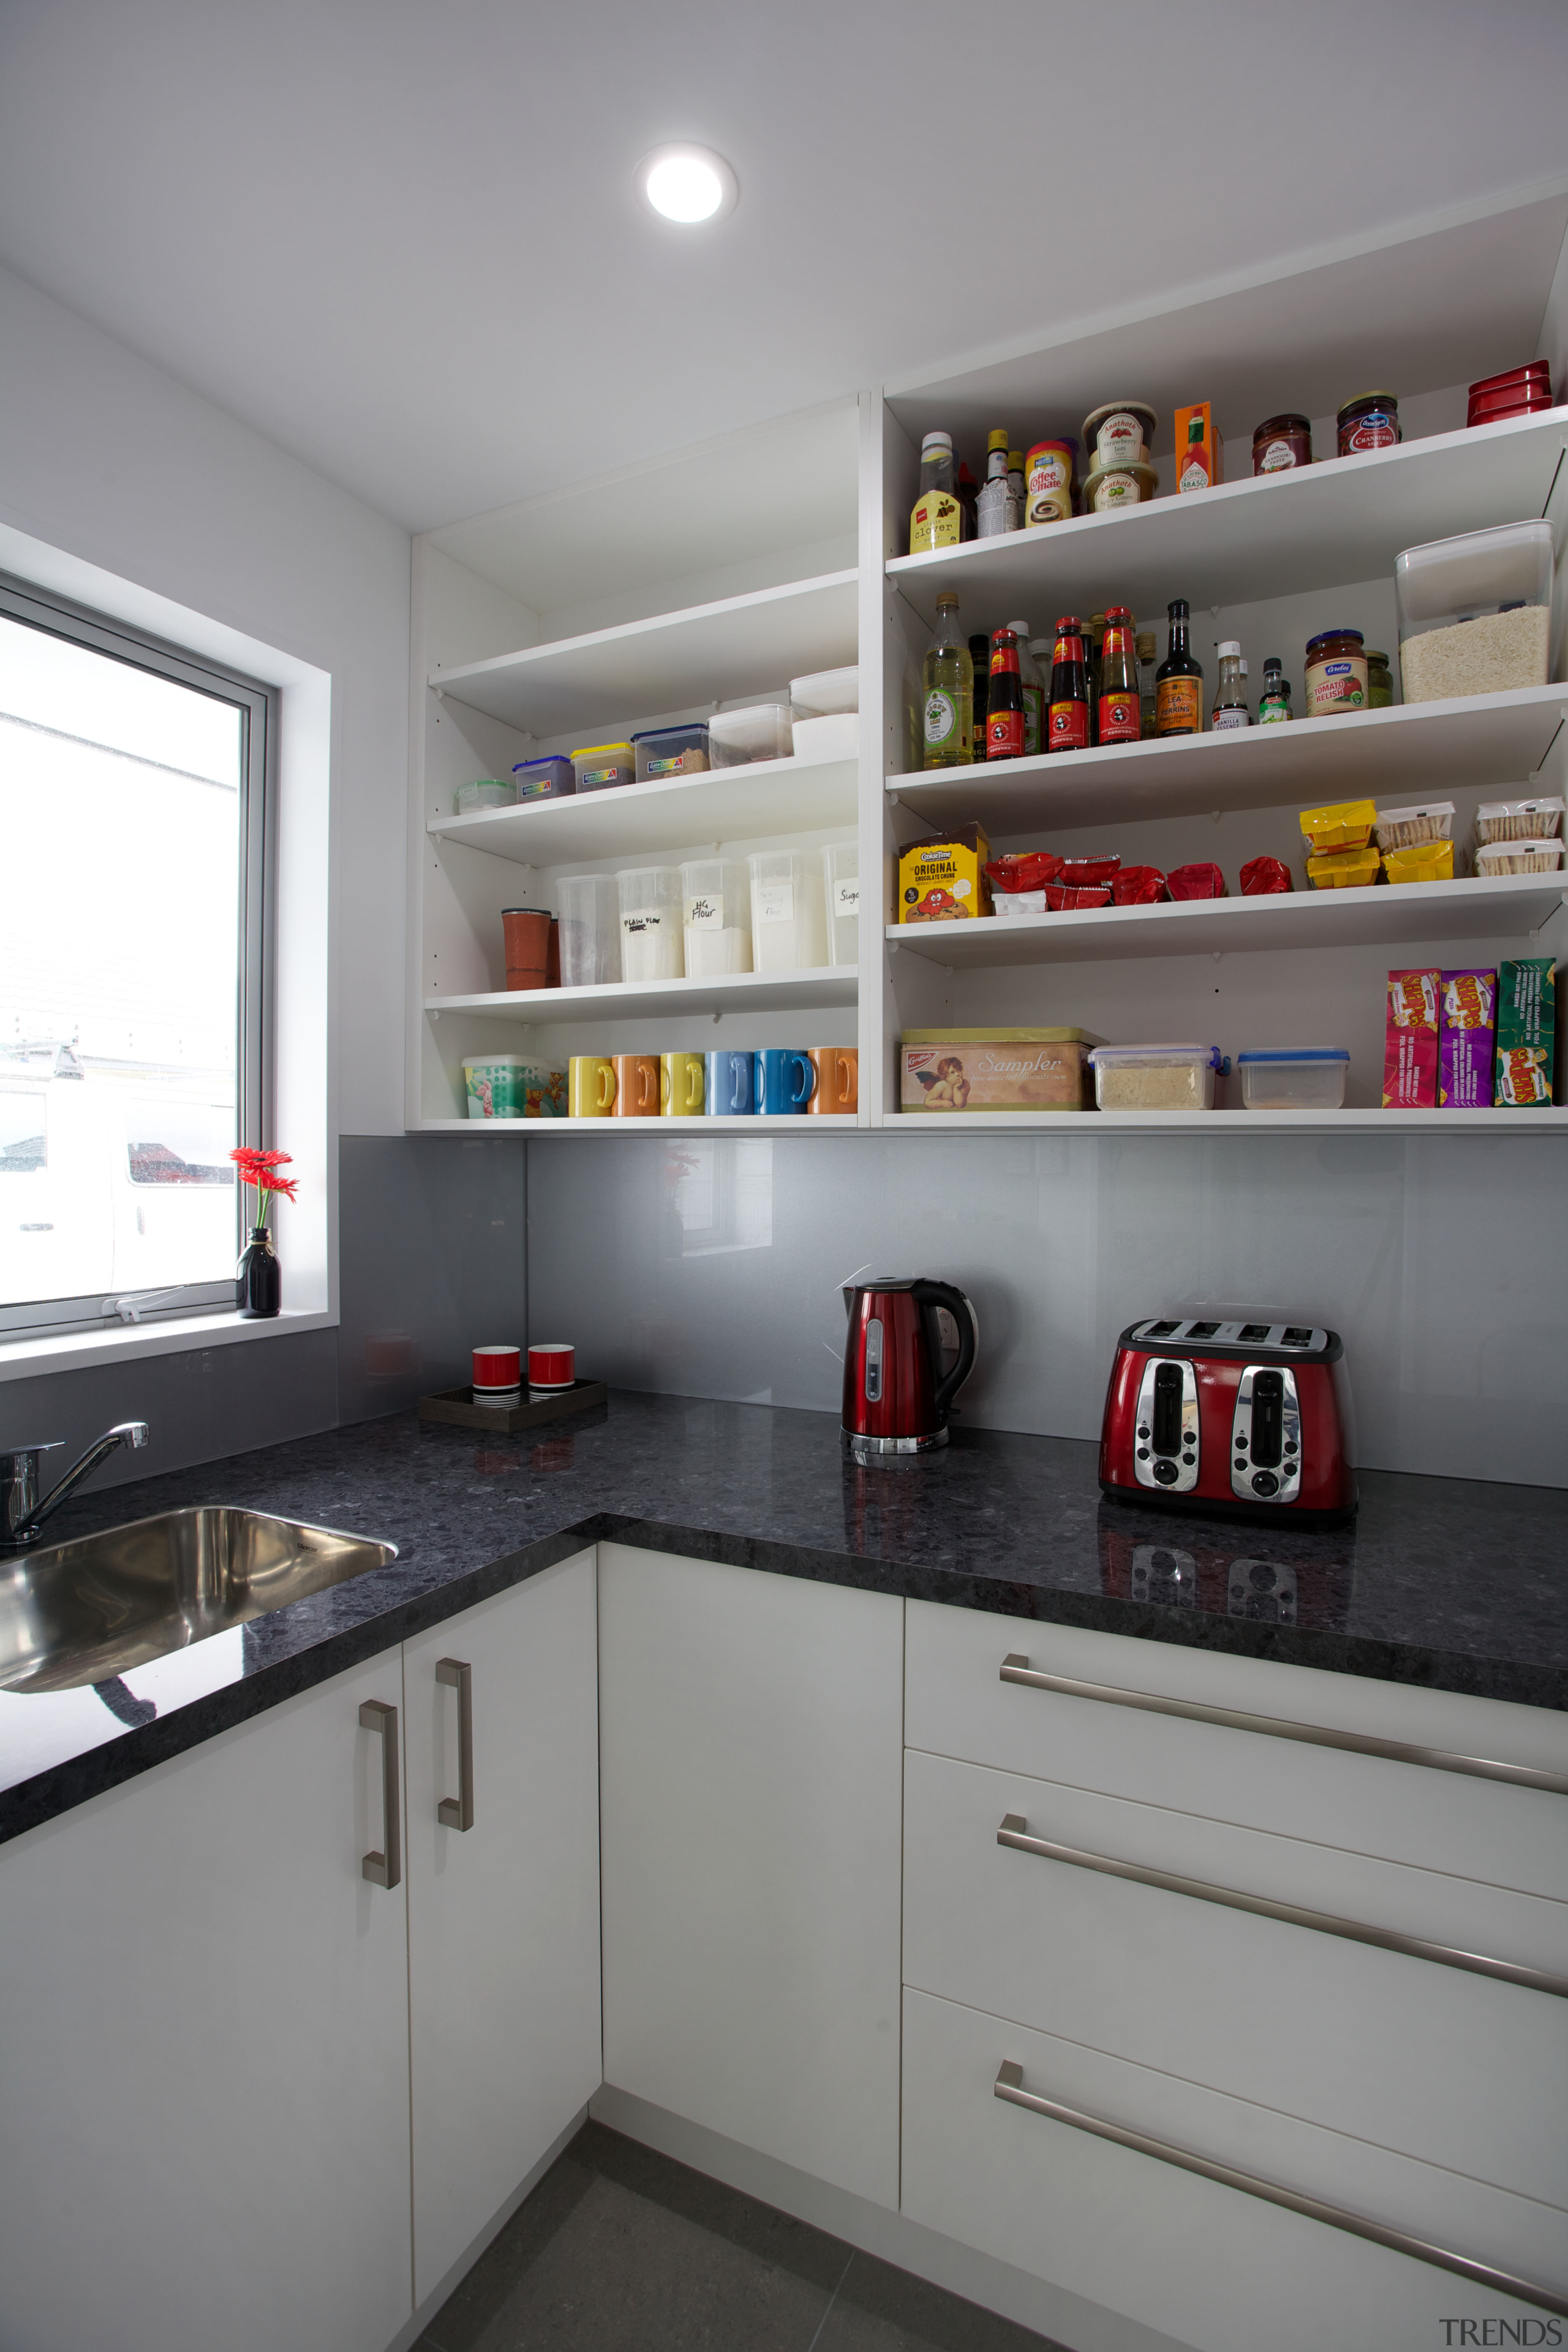 This scullery is part of a large kitchen cabinetry, countertop, interior design, kitchen, gray